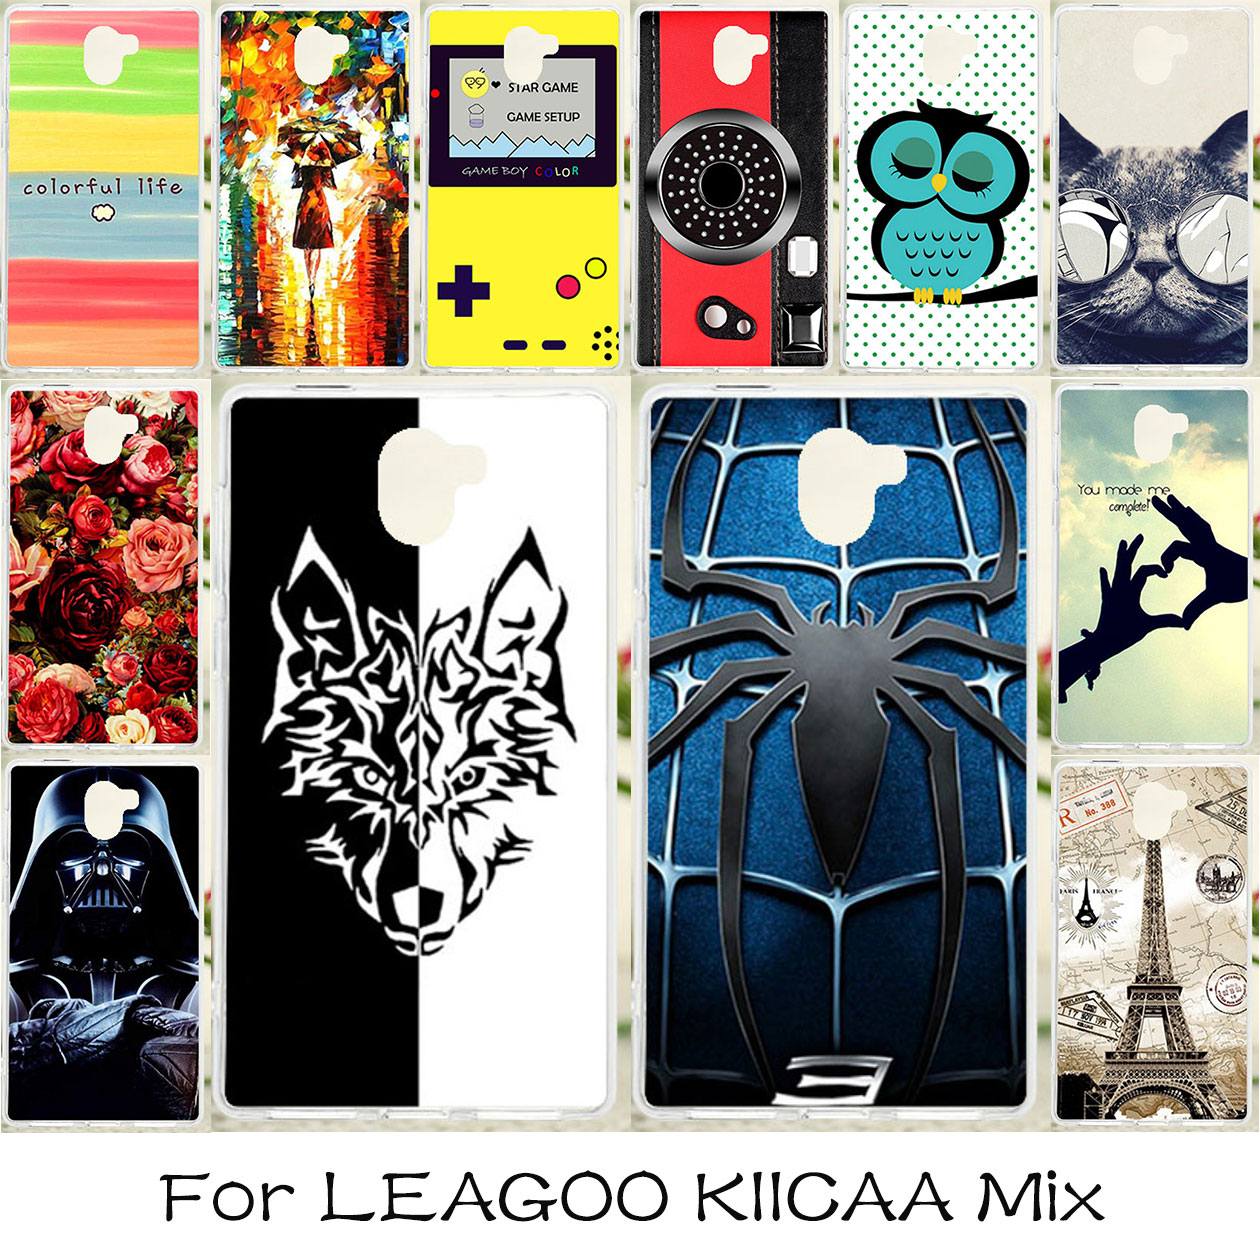 TAOYUNXI Soft Case For LEAGOO KIICAA Mix Case Dirt-resistant DIY Painted Cover For LEAGOO KIICAA Mix Cases Silicone Skin Covers